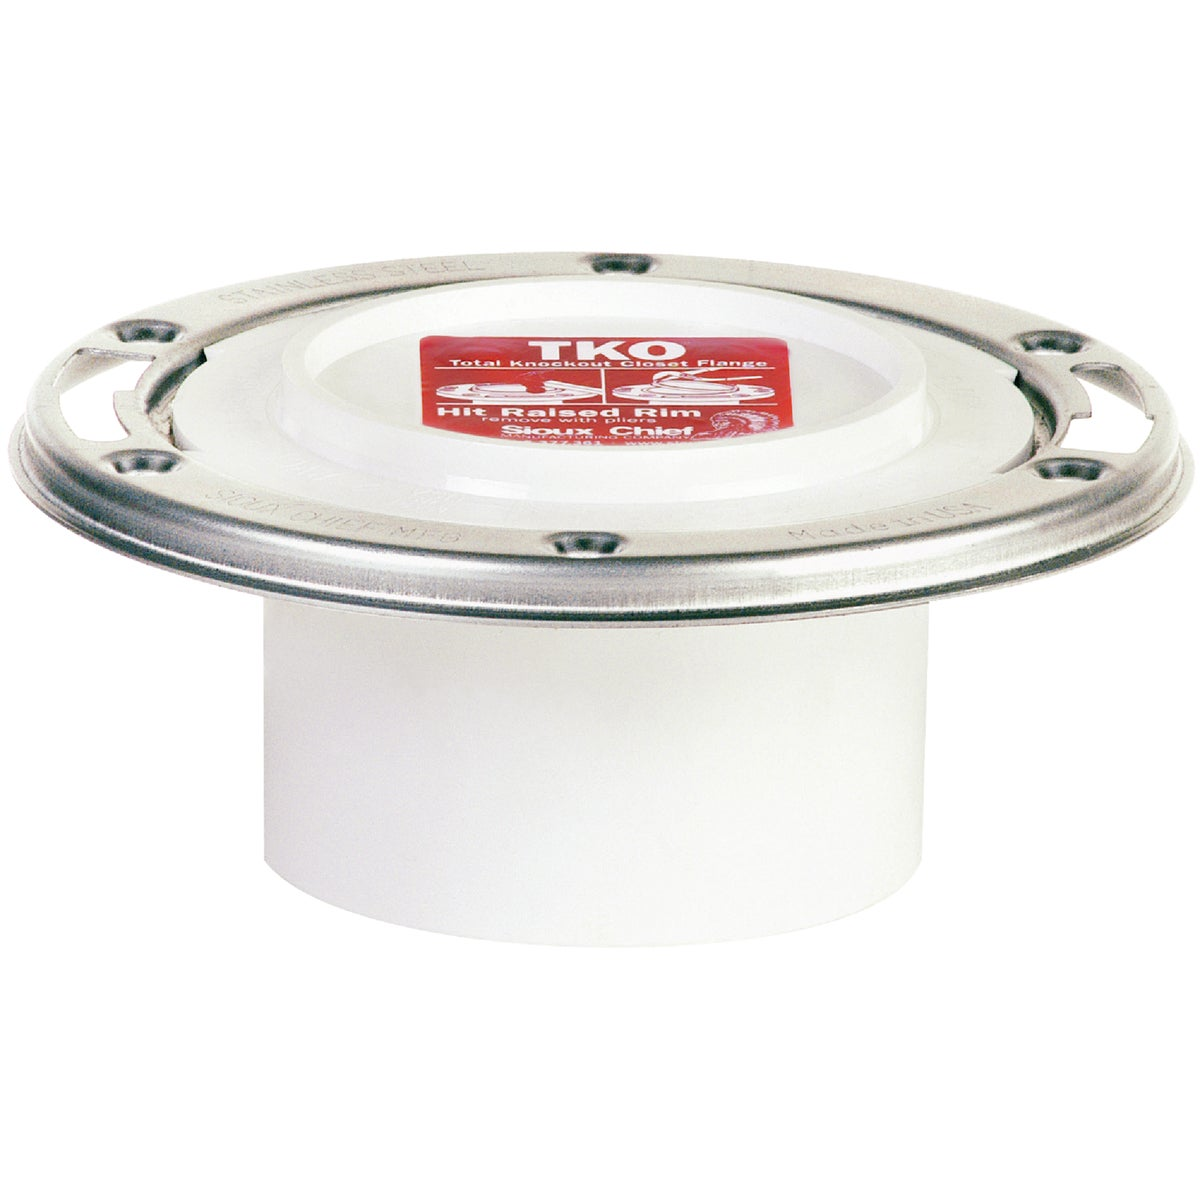 4X3 SS K/O PVC CL FLANGE - 884-PTM by Sioux Chief Mfg